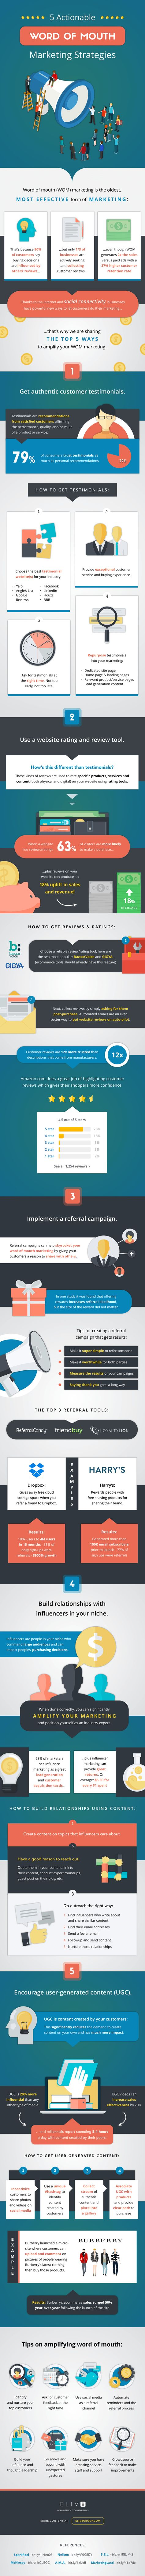 5 Unique Word of Mouth Marketing Strategies